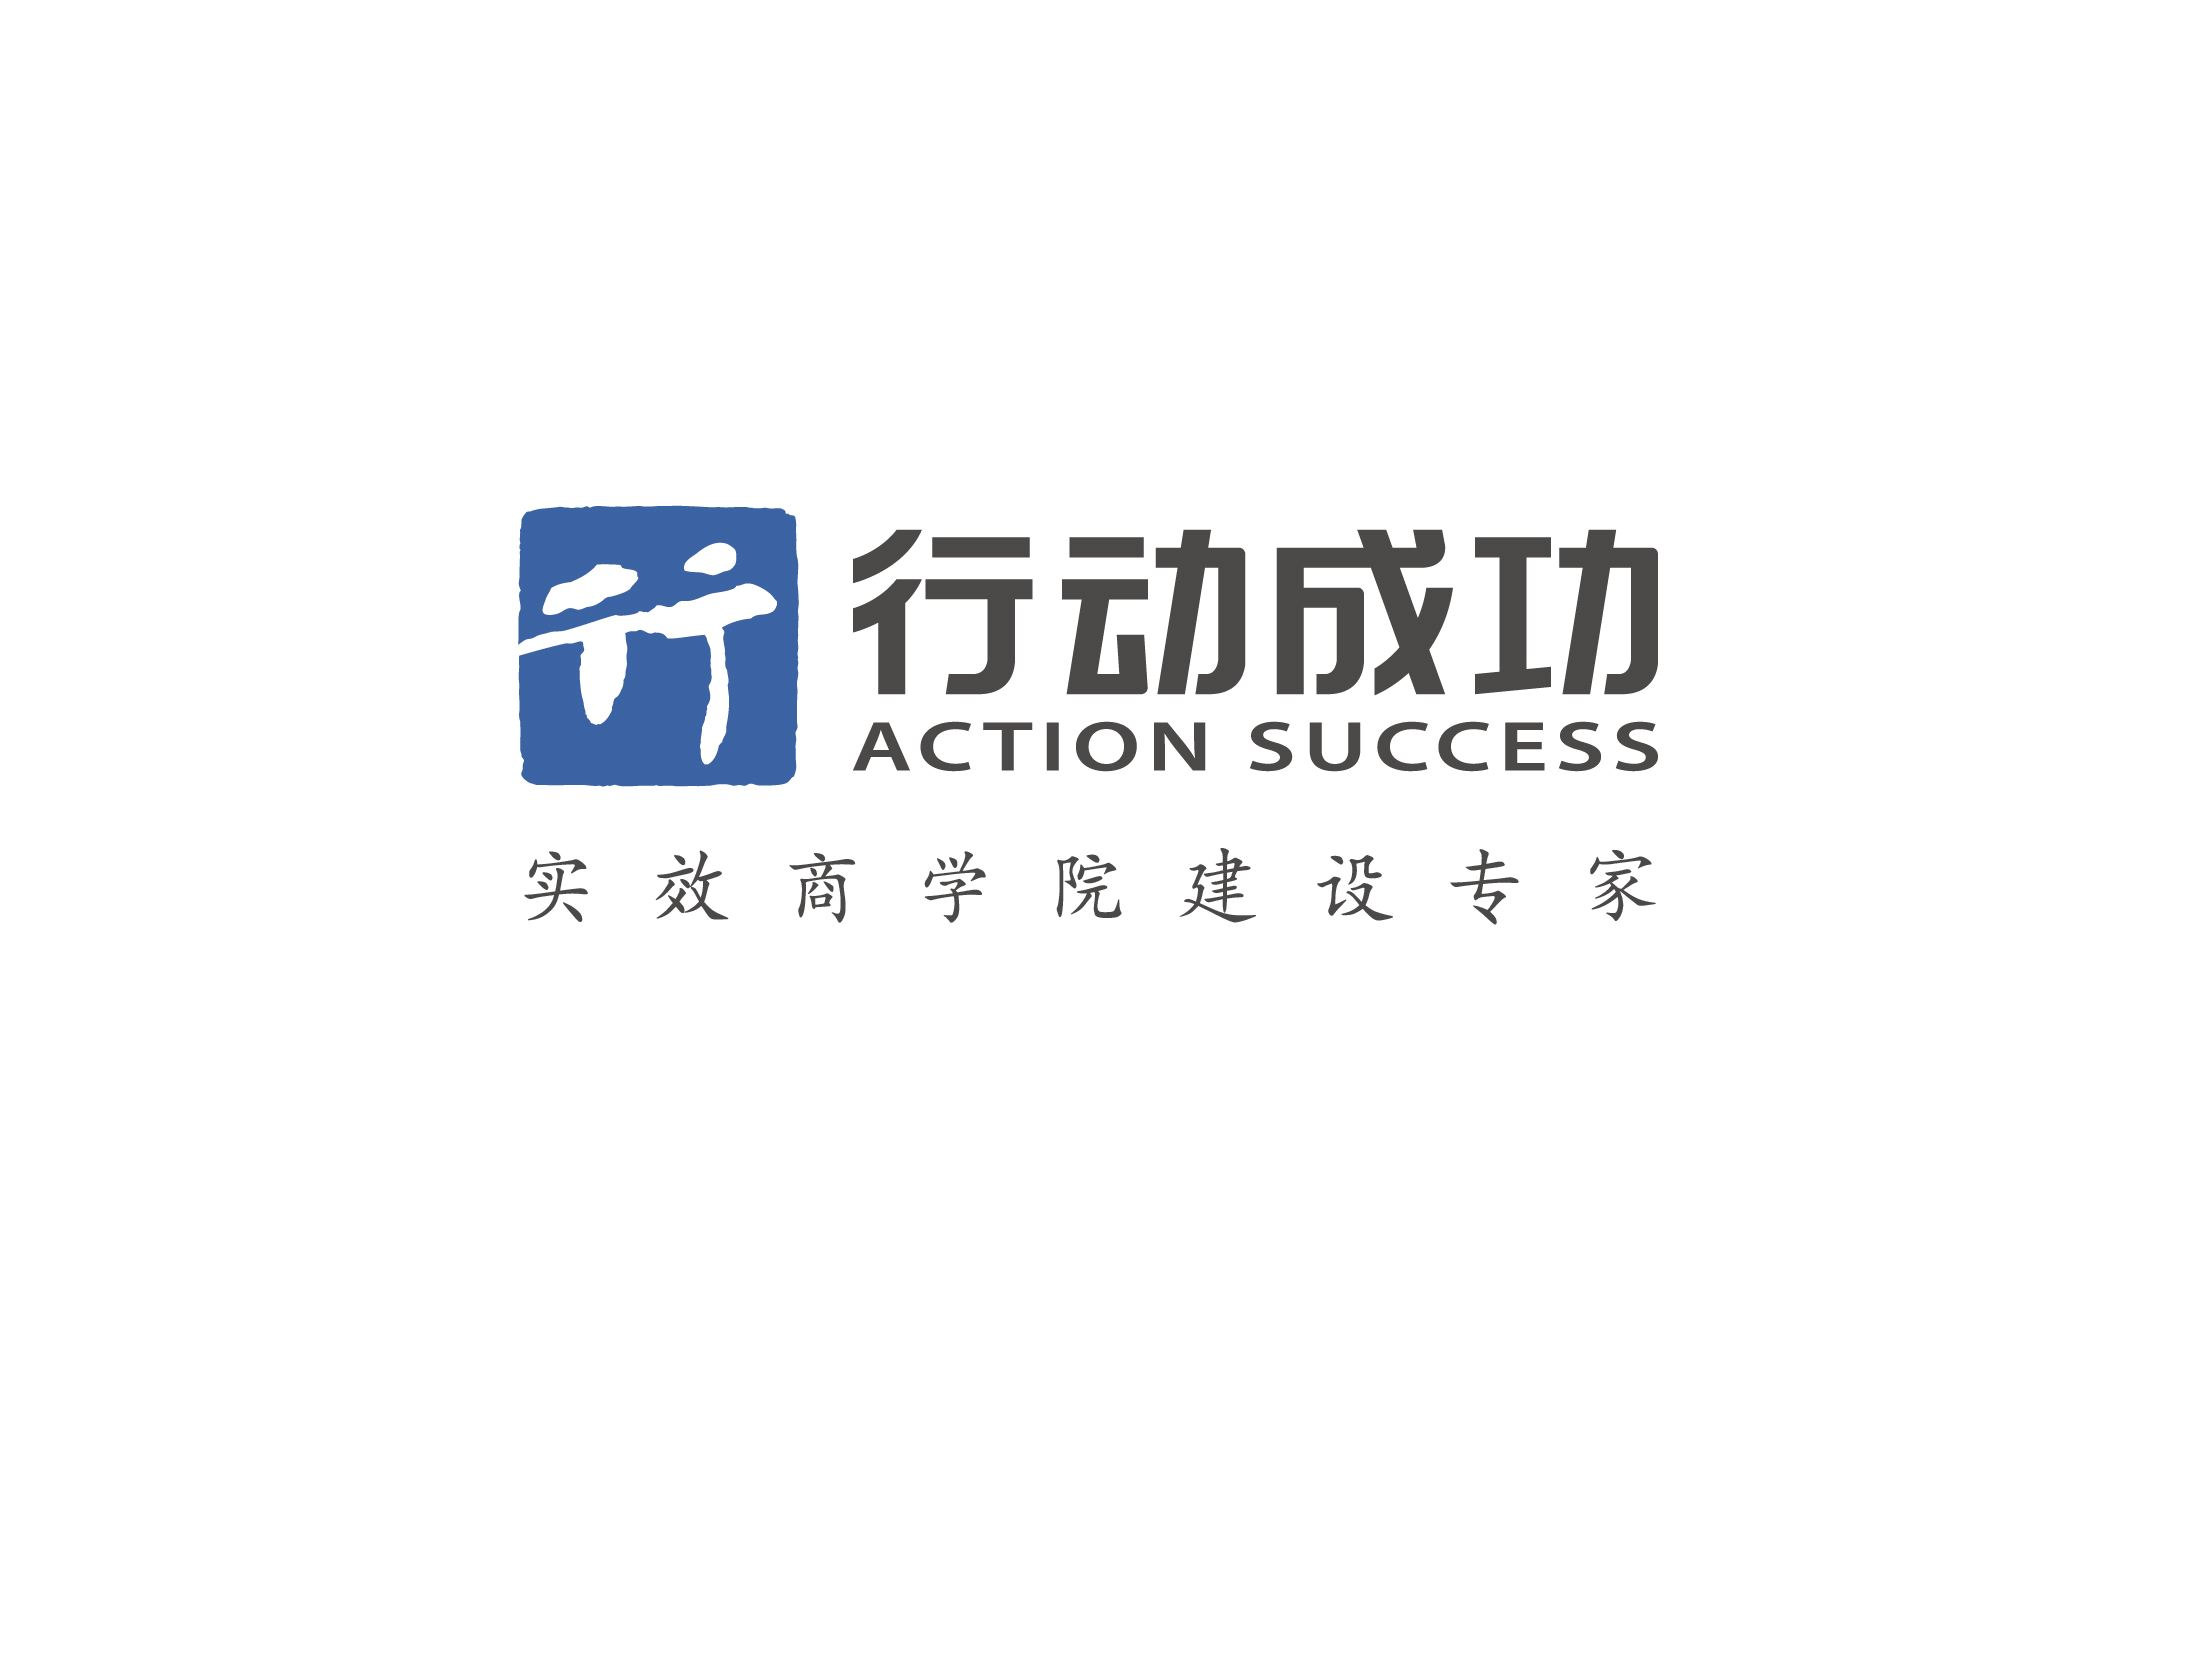 <strong>行动成功</strong>